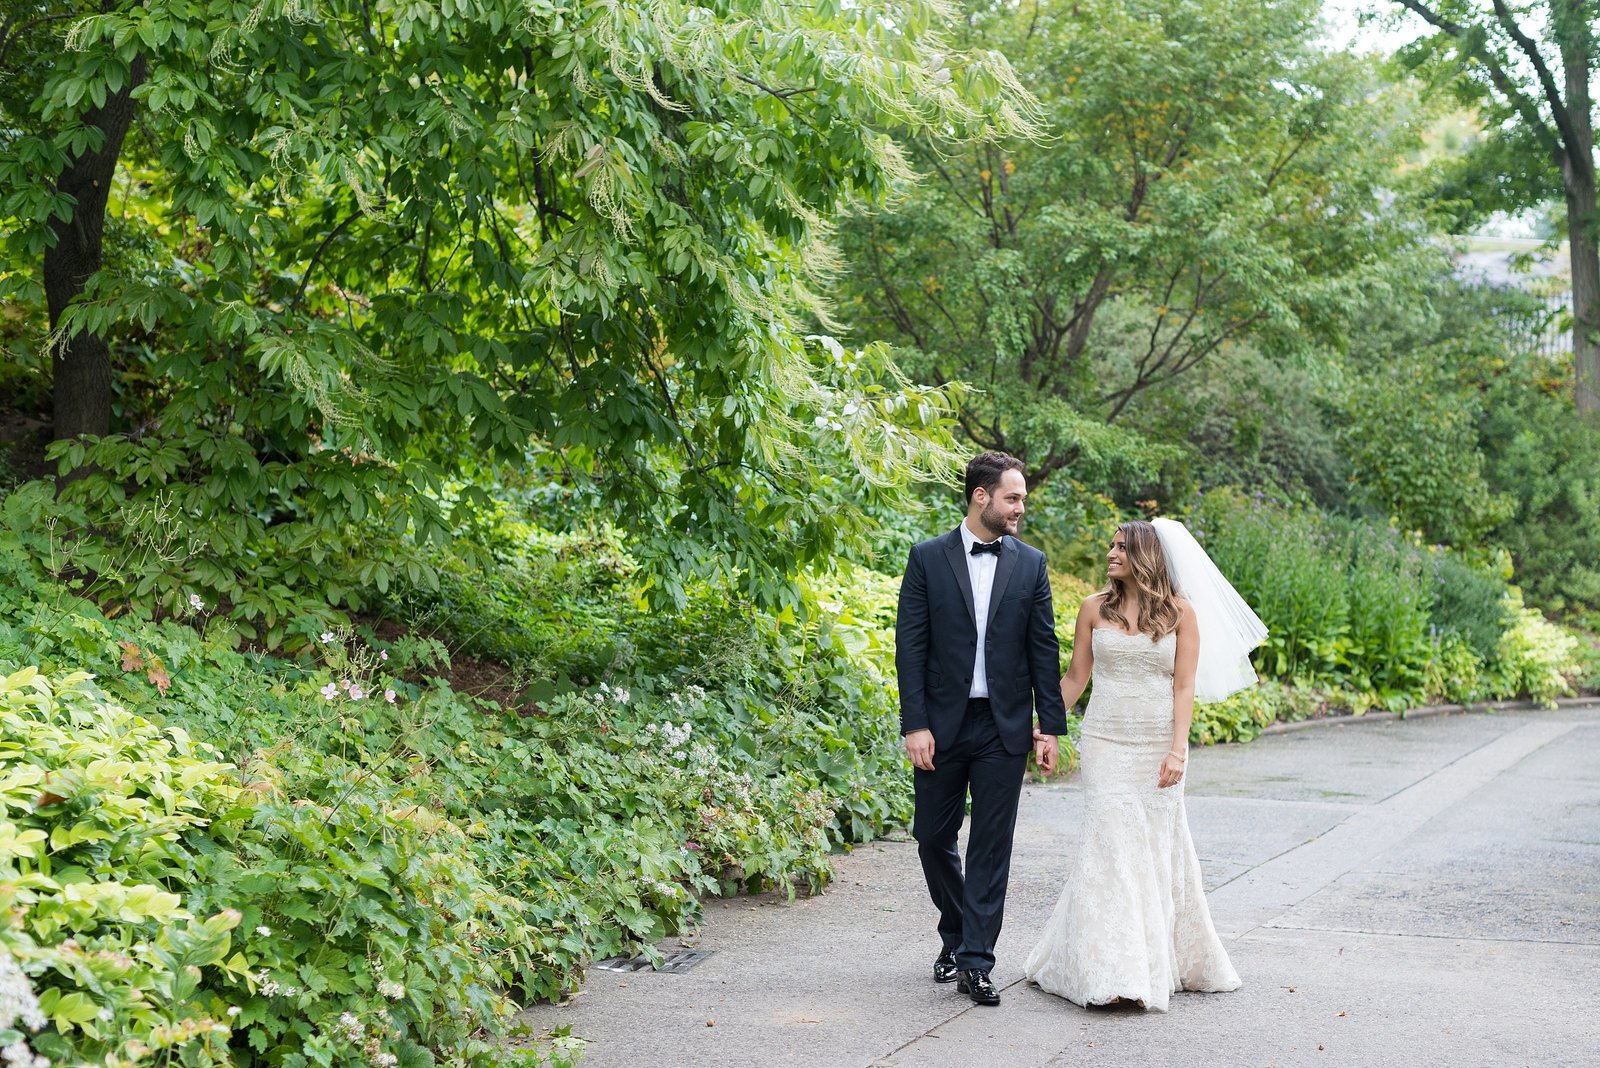 Bride and Groom looking at each other and walking at the Conservatory Garden in Central Park, New York City Photo